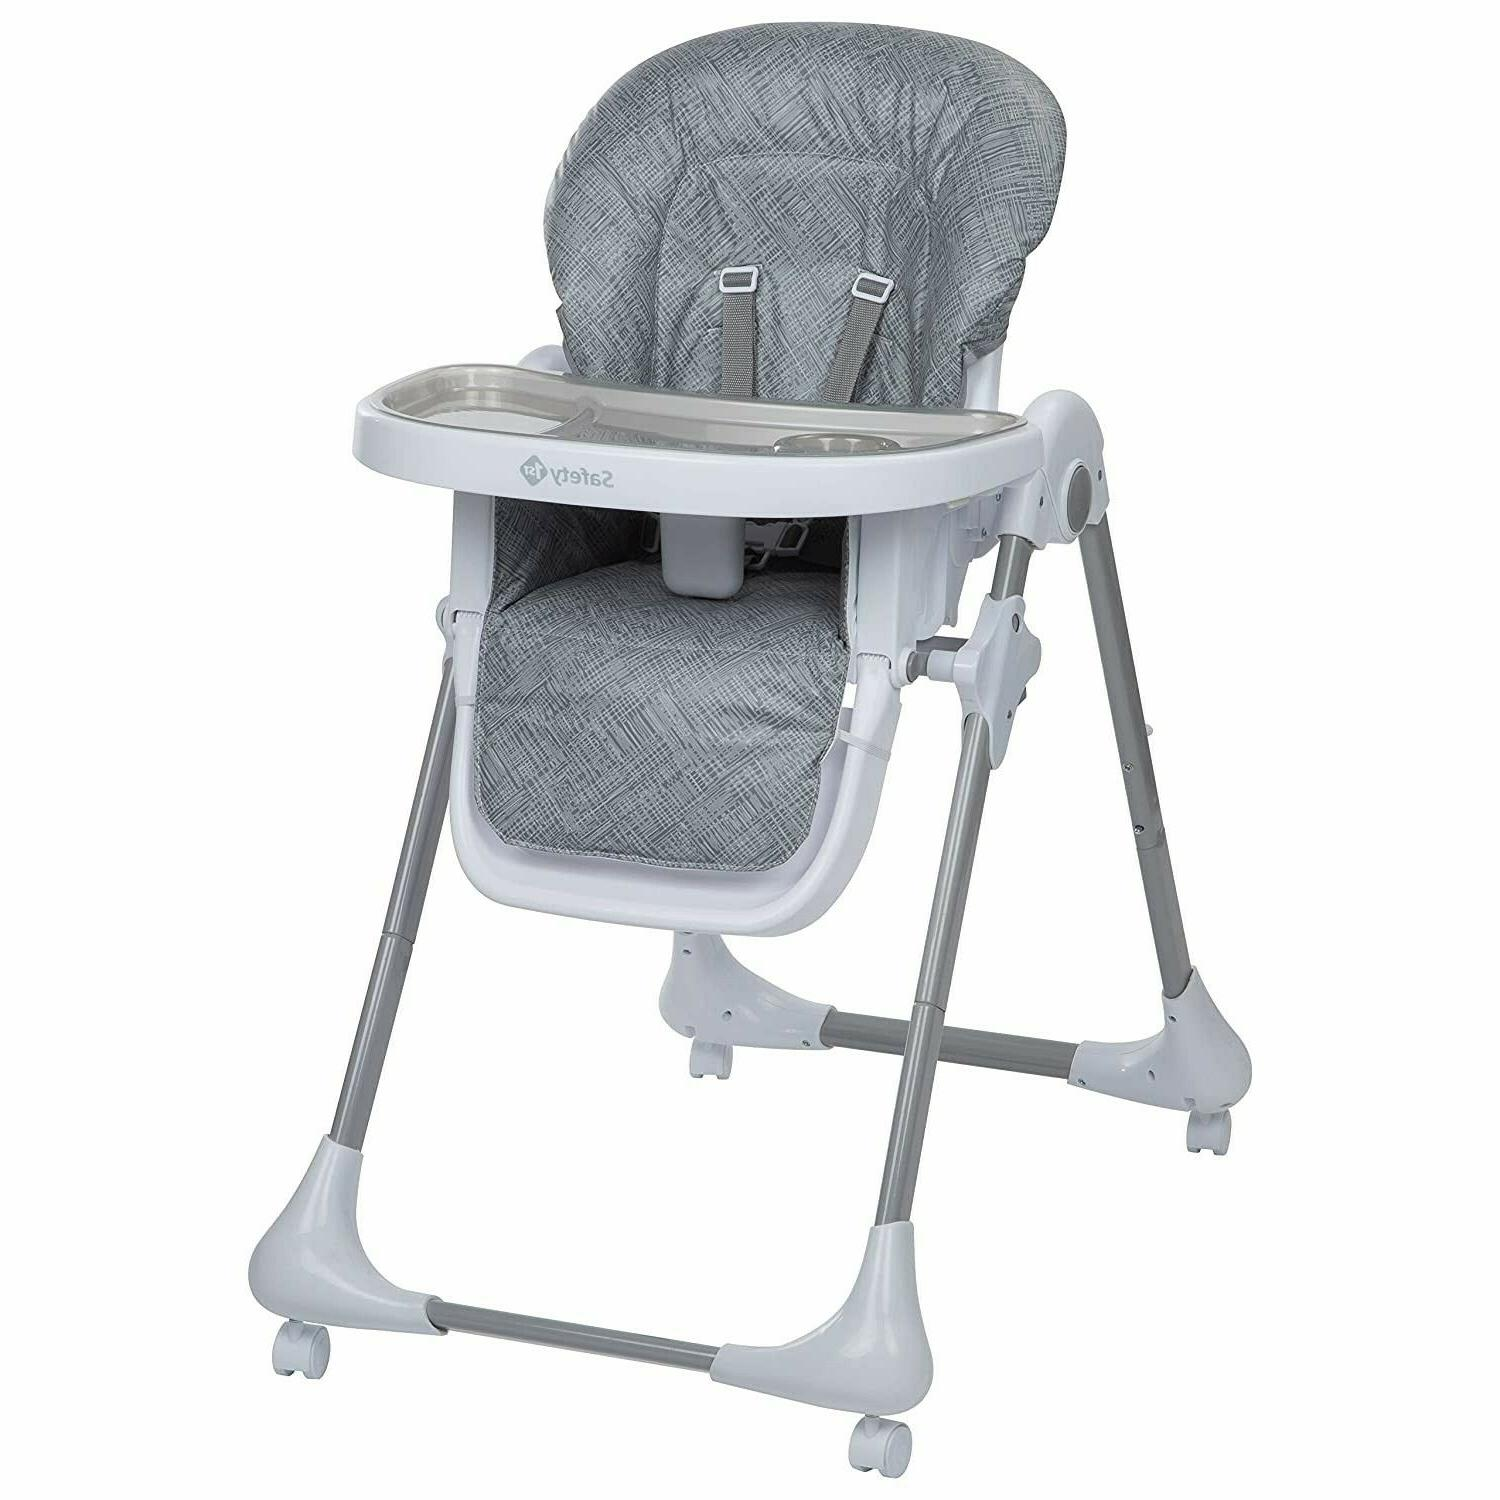 Baby System with Car Seat High Chair Bouncer Playard Combo Set